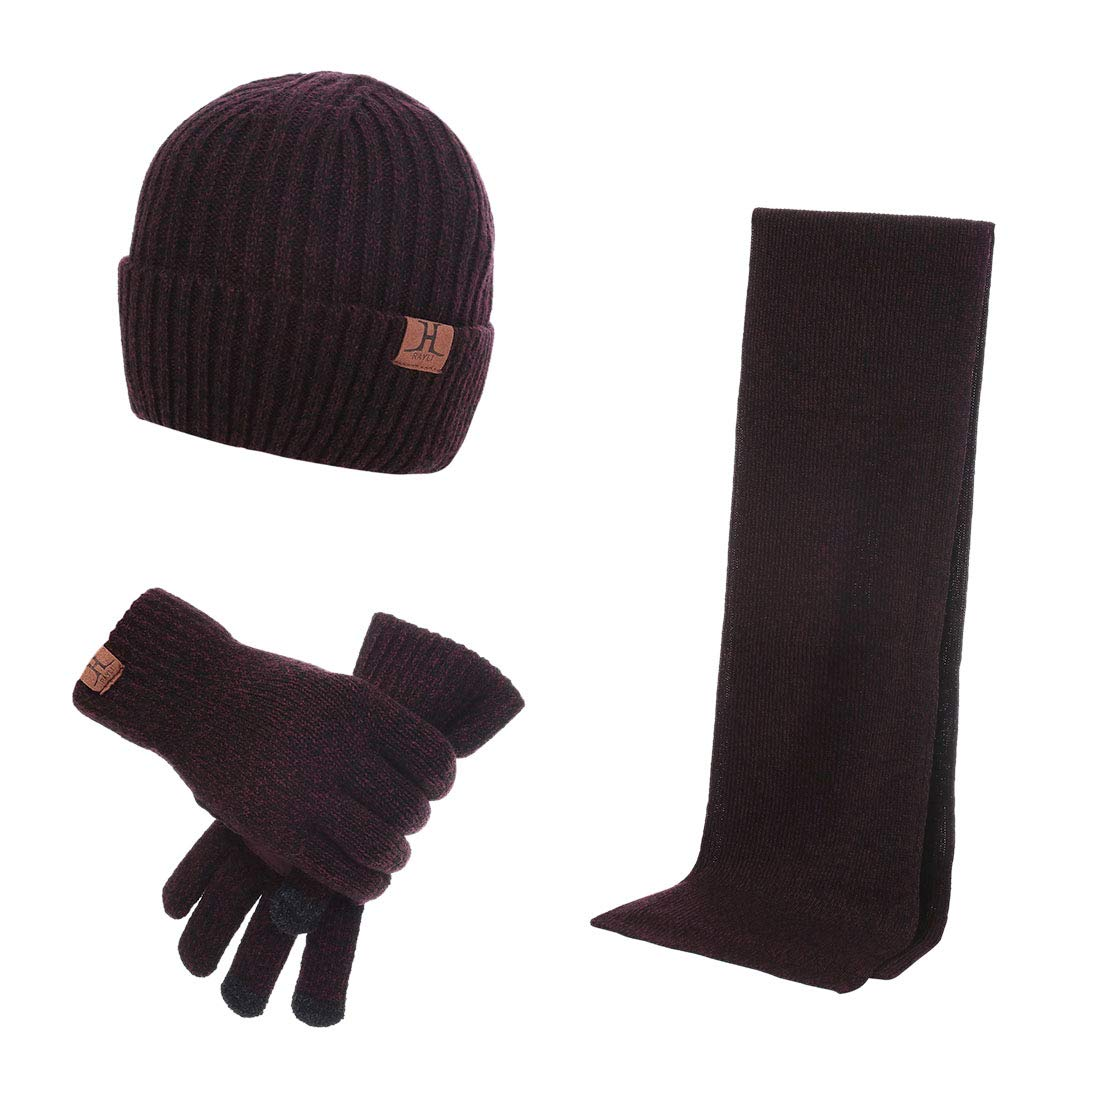 Pinji 3 pcs Men Hat Gloves Scarf Touch Screen Soft Knitted Cold Weather Set